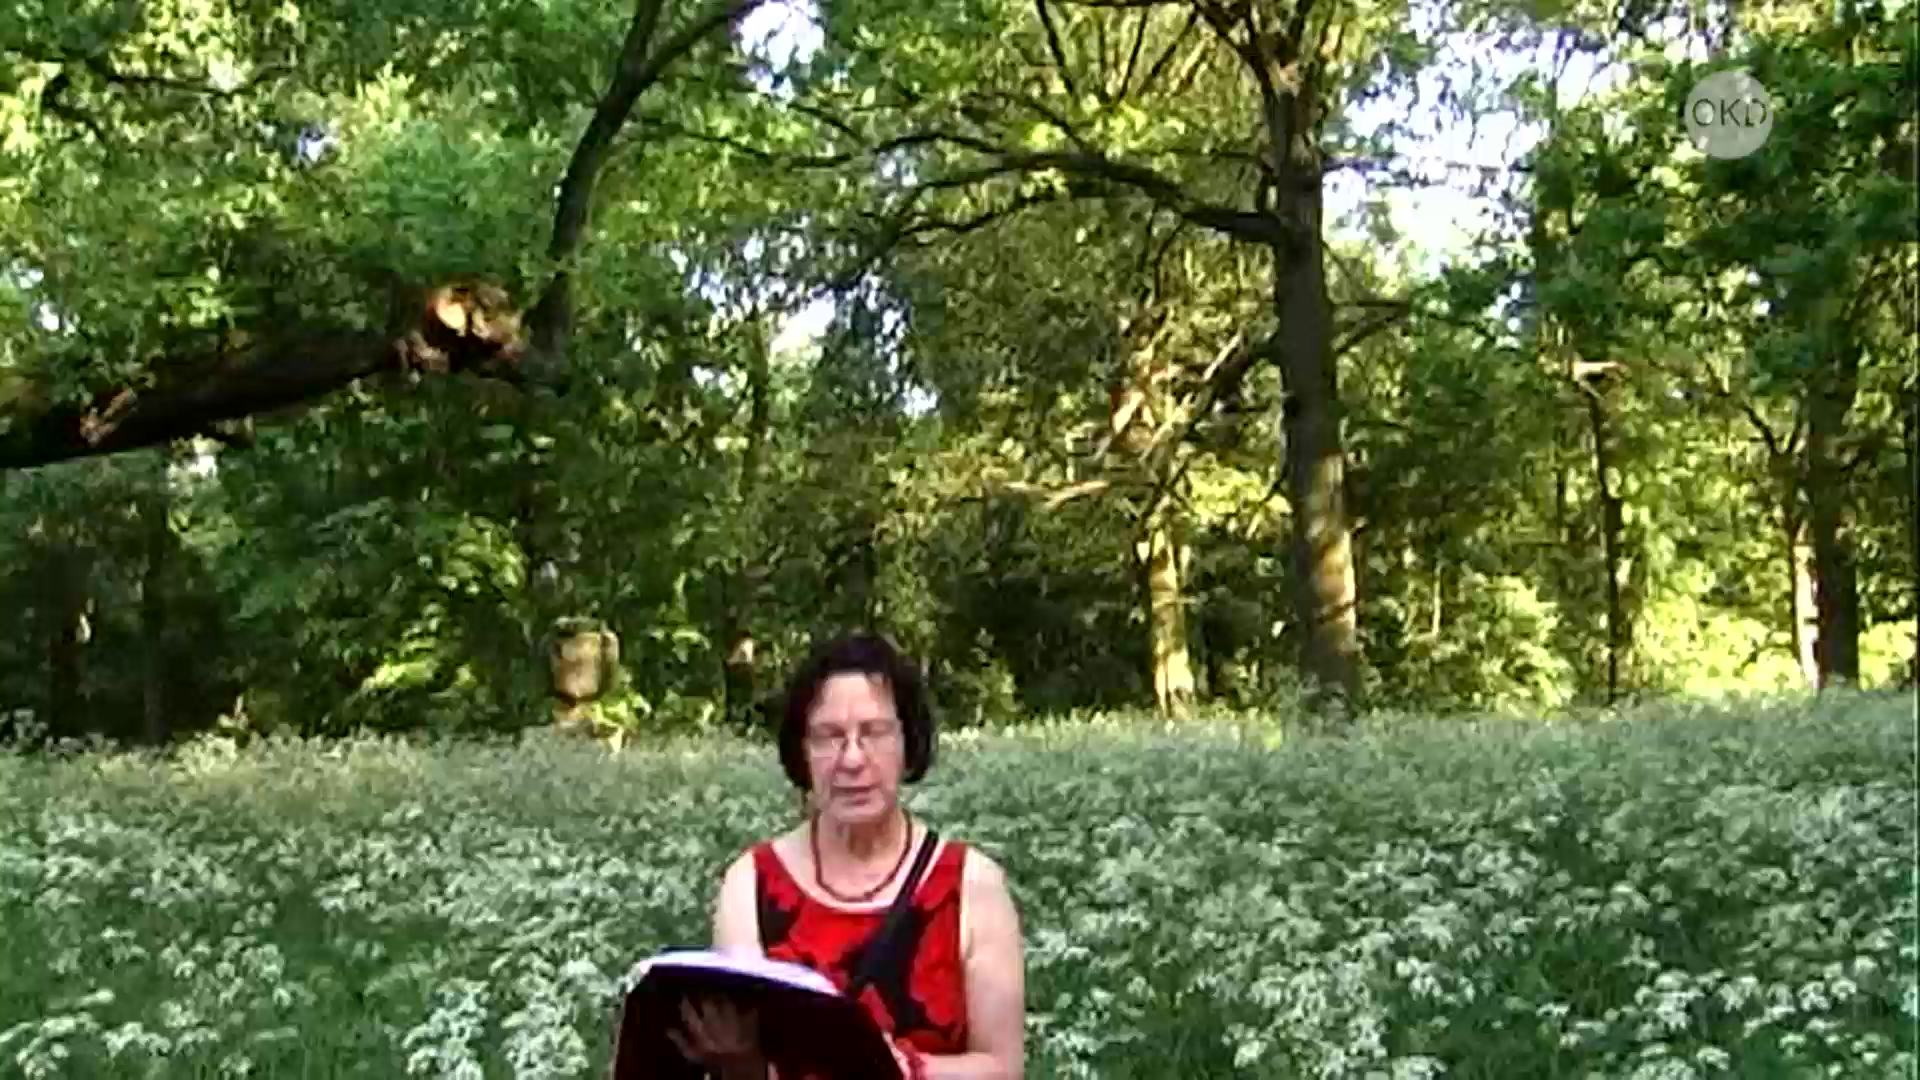 Watch Offener Kanal Dessau